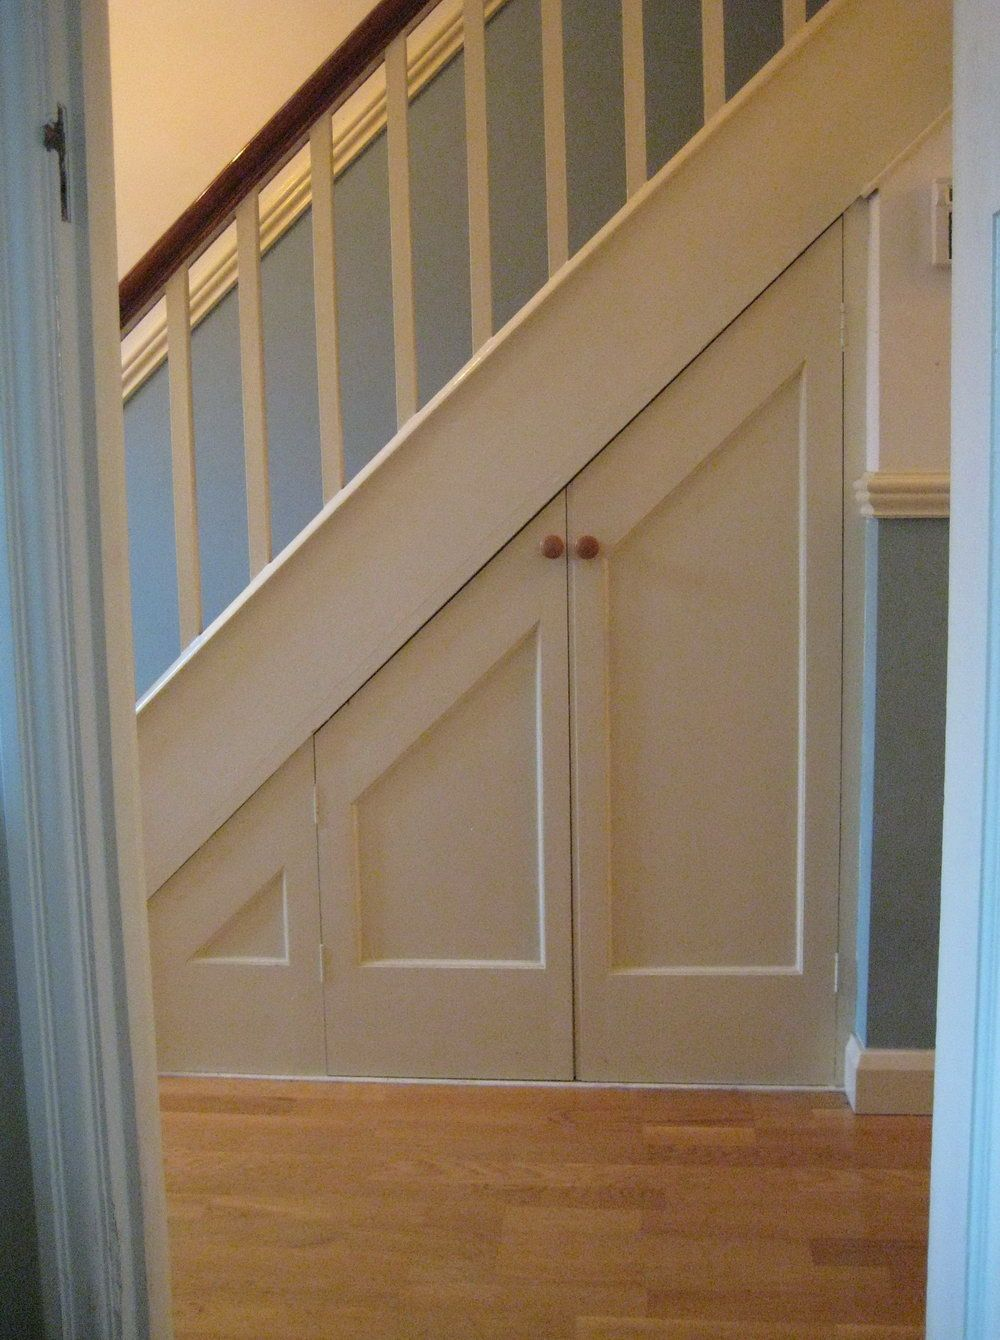 Under Stairs Closet Door : stair door - pezcame.com